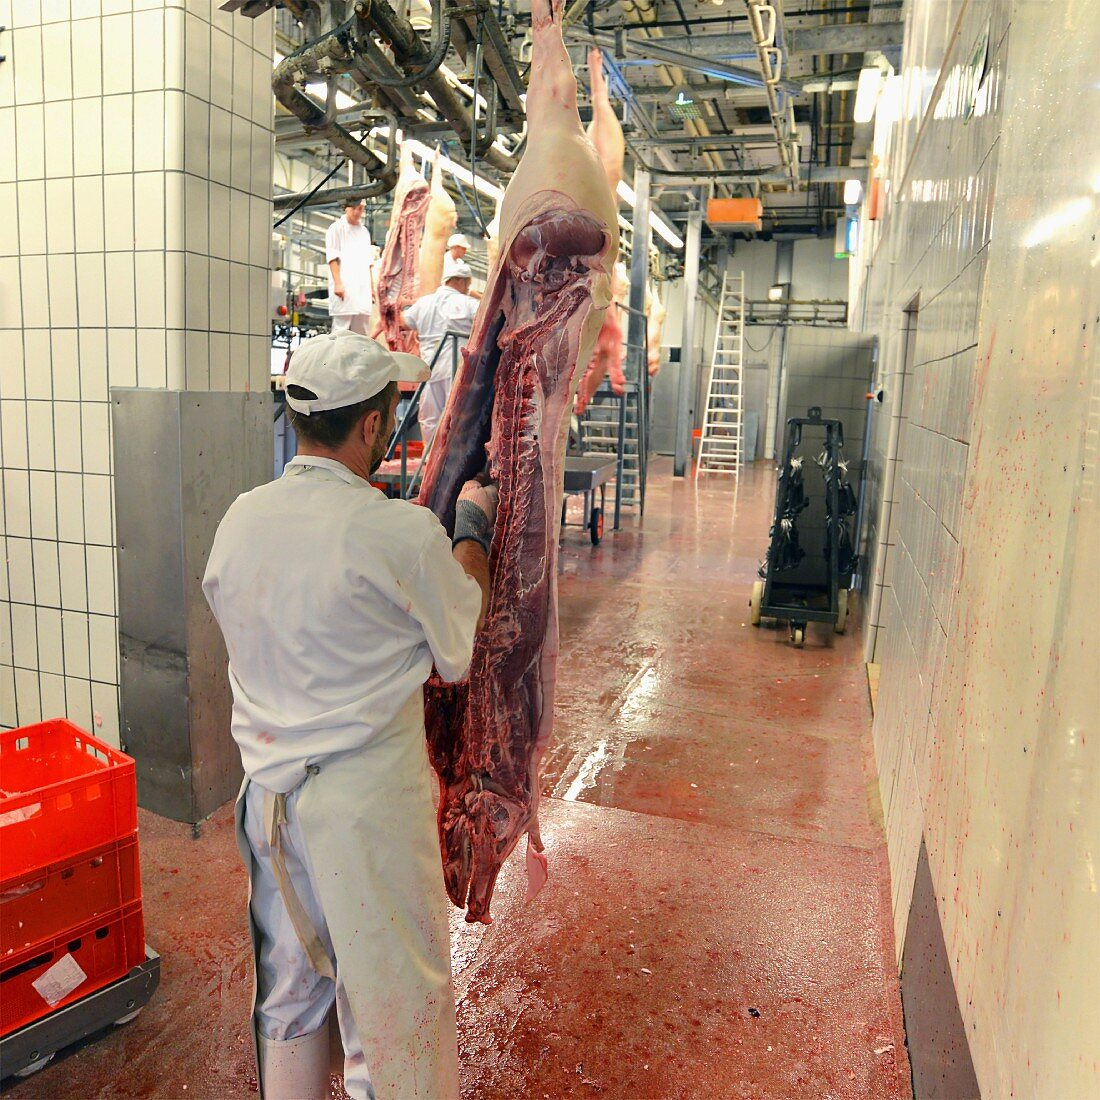 A pig carcass being jointed in a slaughterhouse, Germany